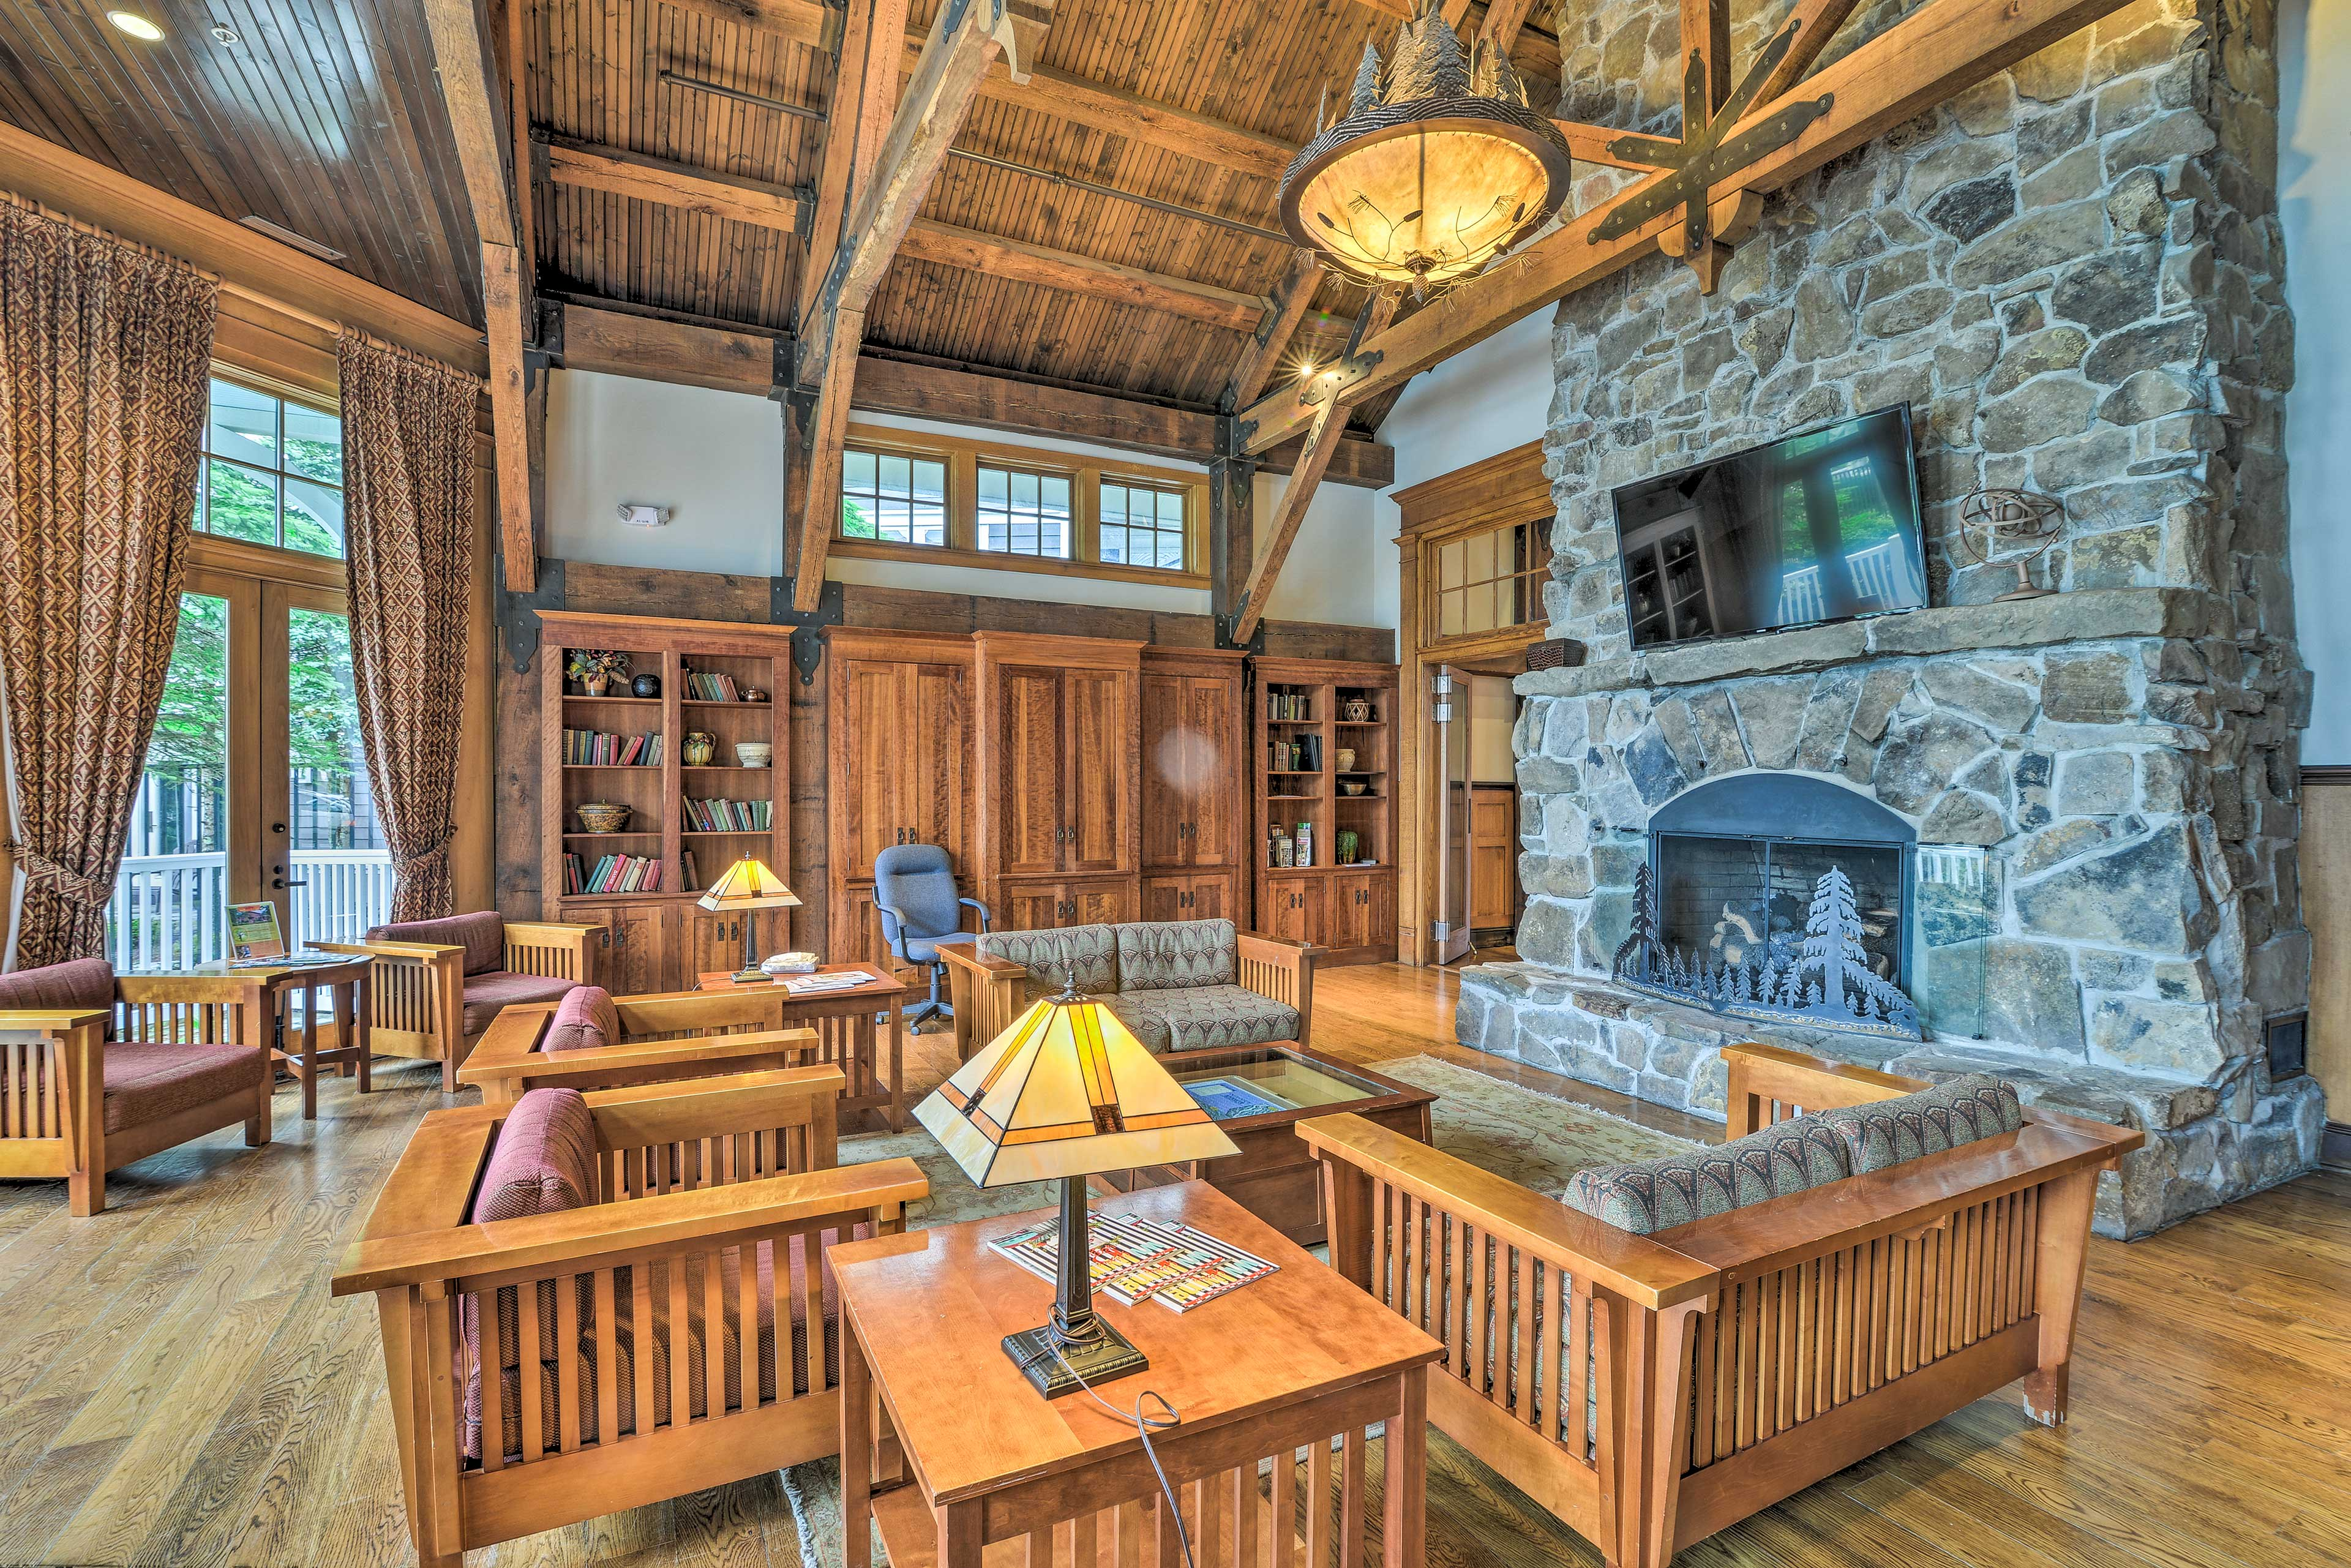 Kill a little time while reading a book or lounging in front of the fireplace.